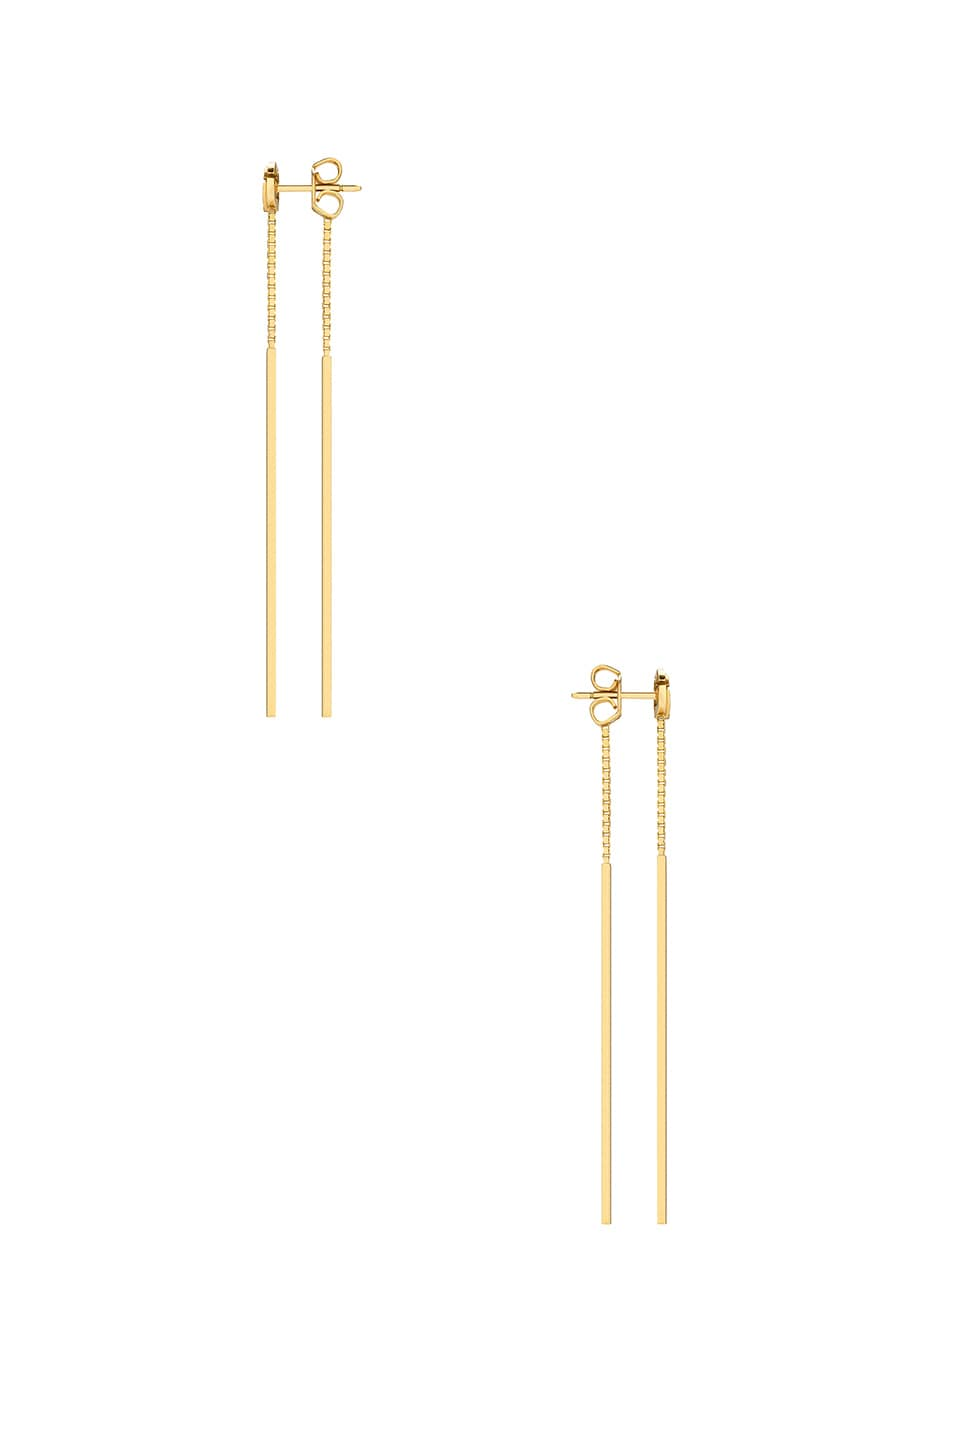 Image 2 of Gucci GG Running Pendant Earrings in 18KT Yellow Gold